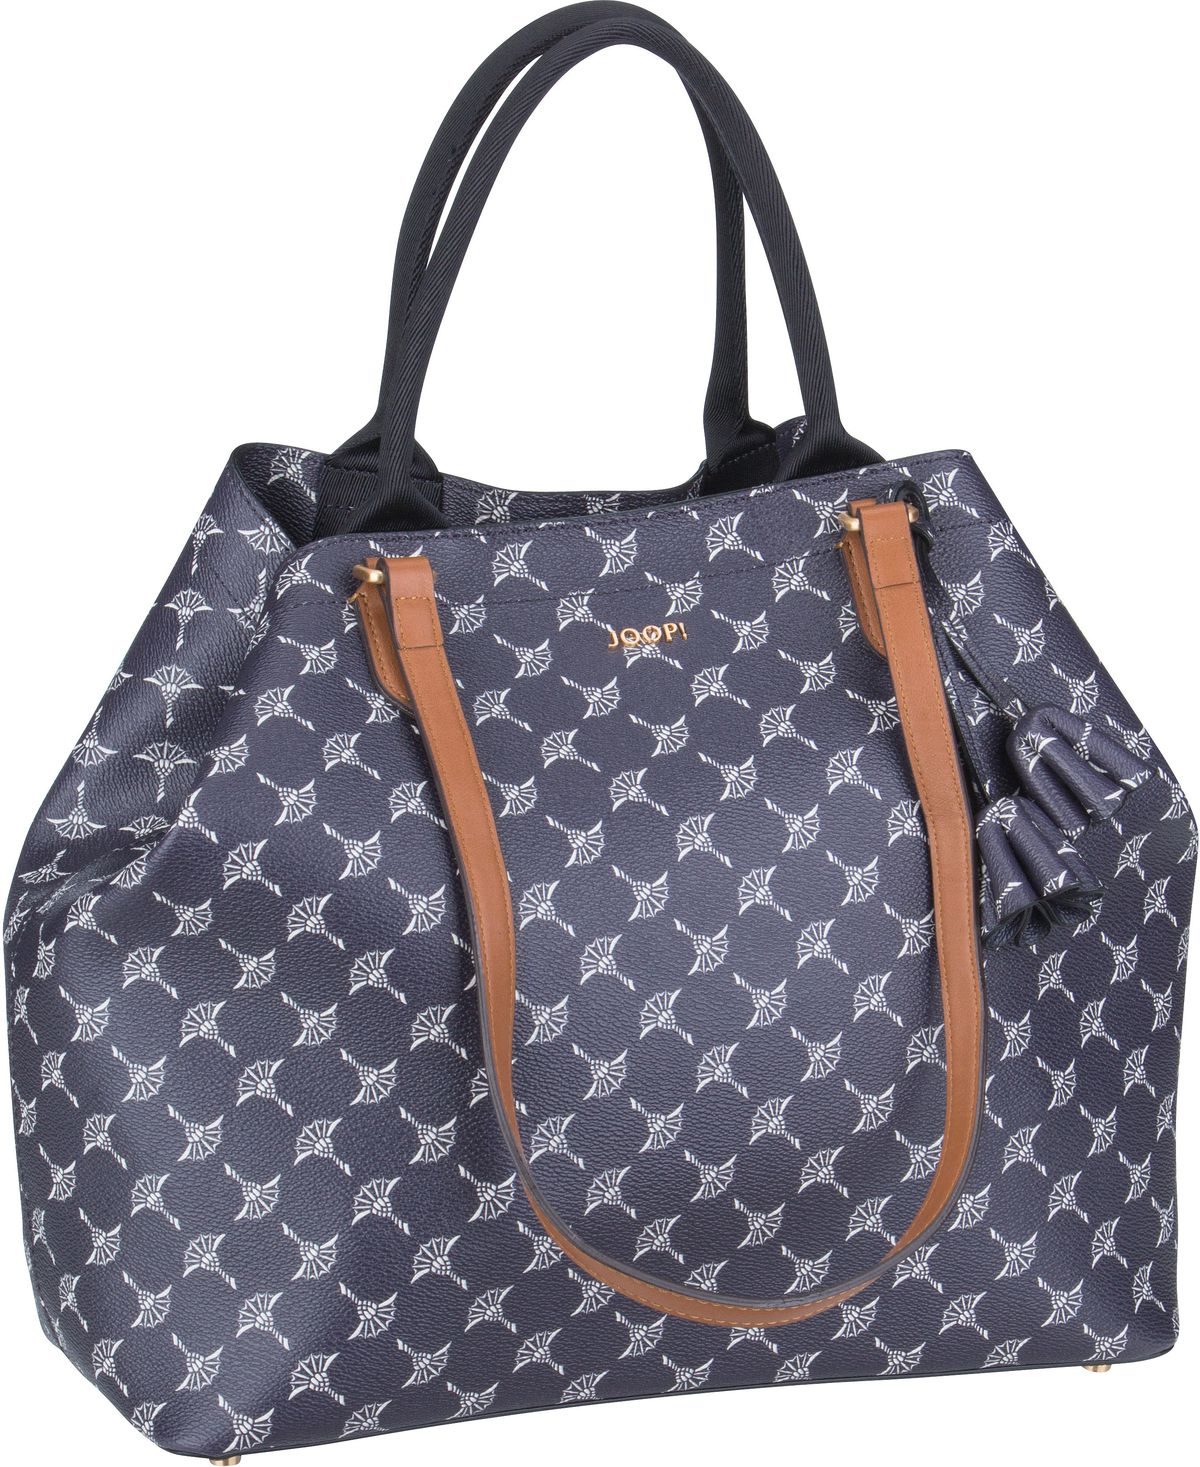 Handtasche Cortina Sara Shopper LHO Nightblue